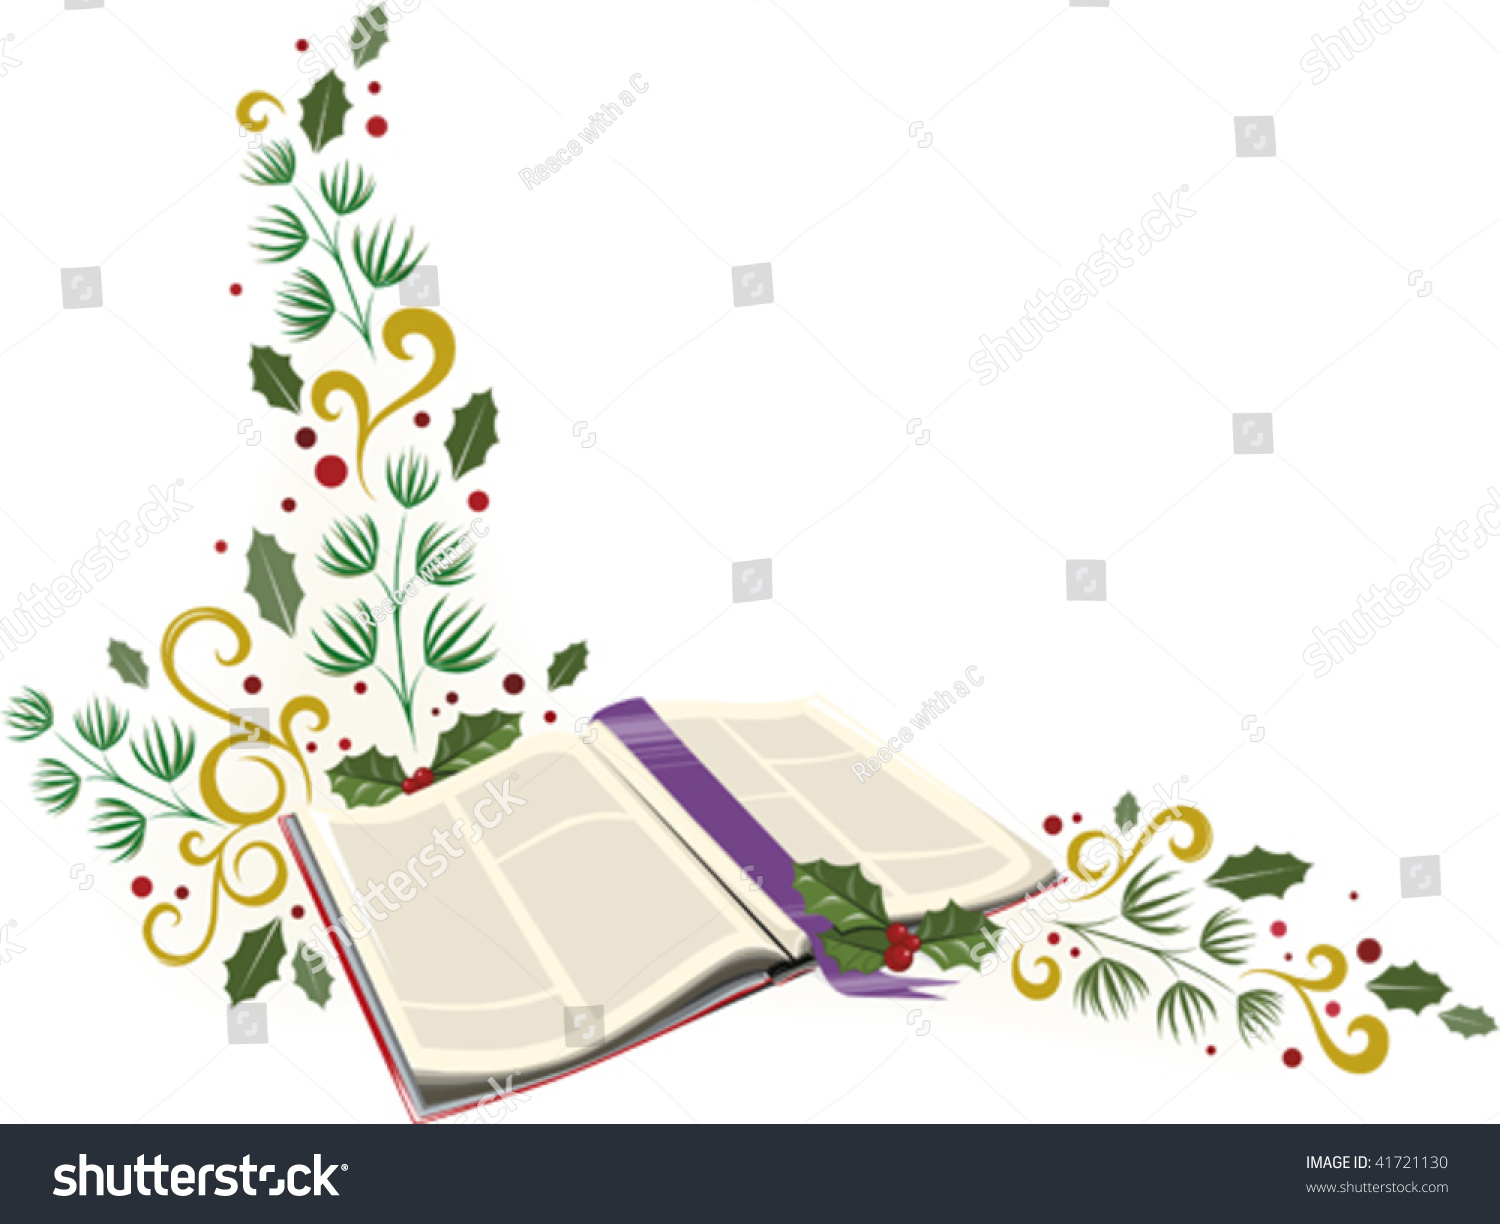 Christmas Bible Corner Embellishment Stock Vector (Royalty Free ...